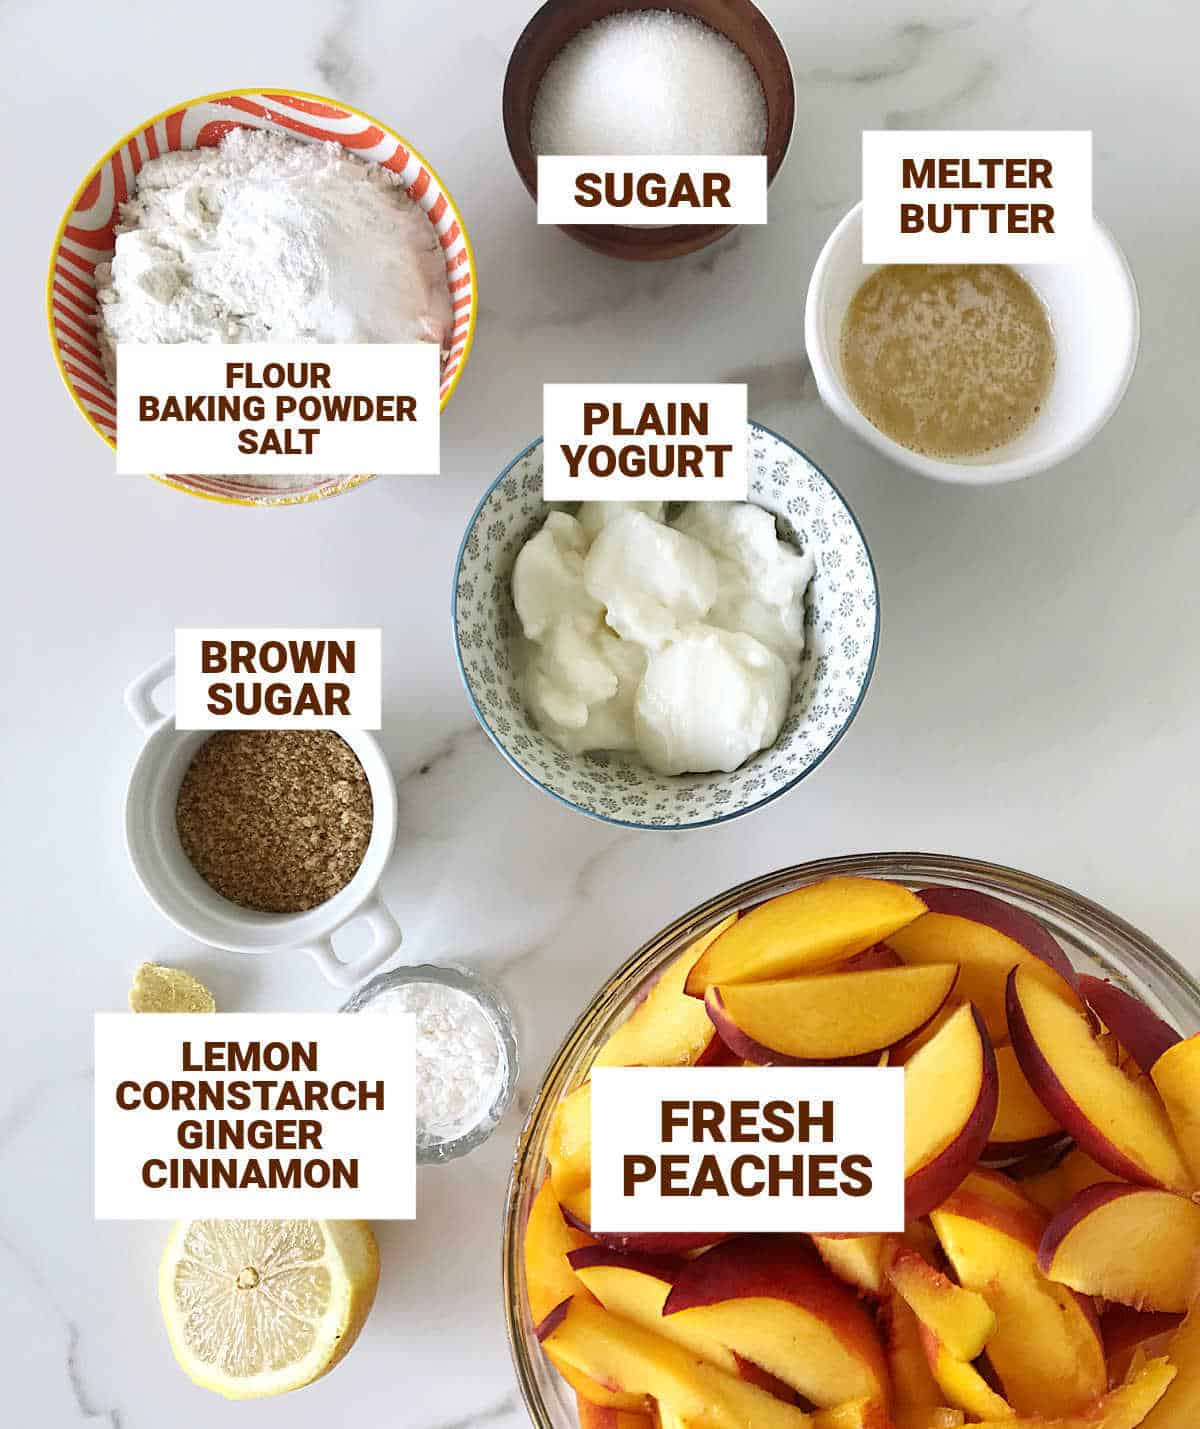 White surface with bowls containing ingredients for peach cobbler including yogurt, butter, lemon, and brown sugar